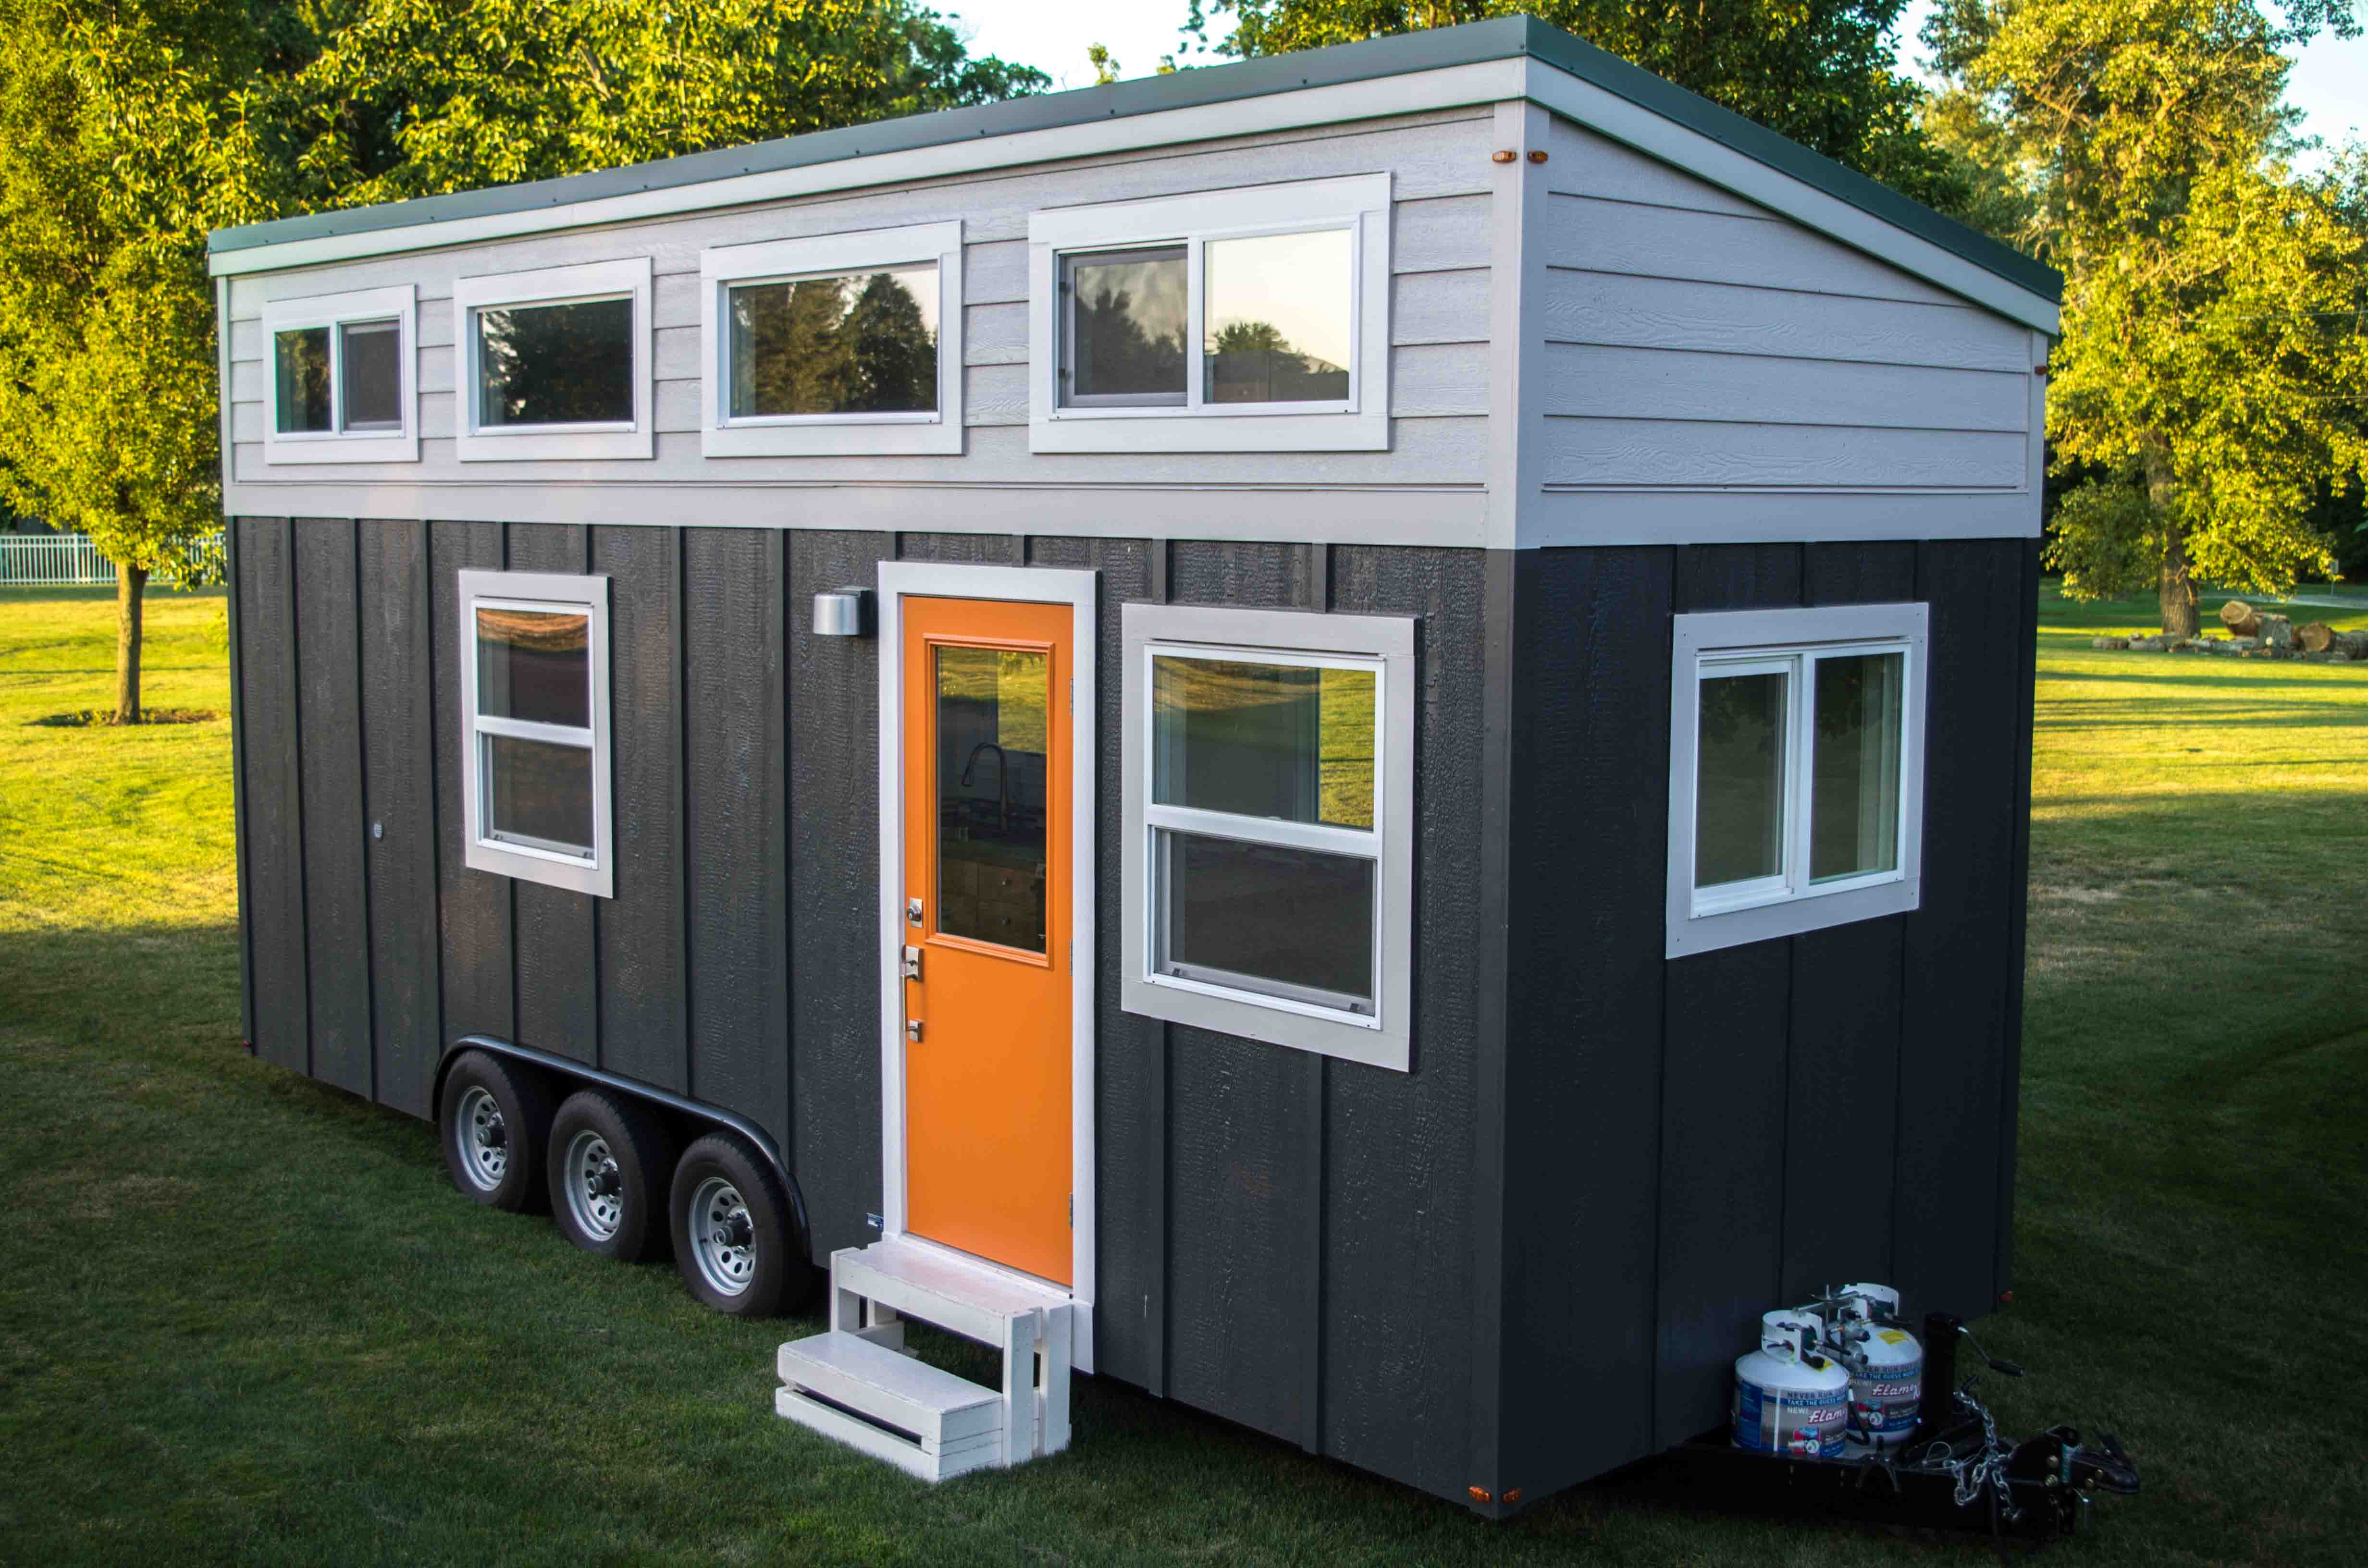 Models Seattle Tiny Homes - 670 Sq. Ft. Tiny Cottage Plans